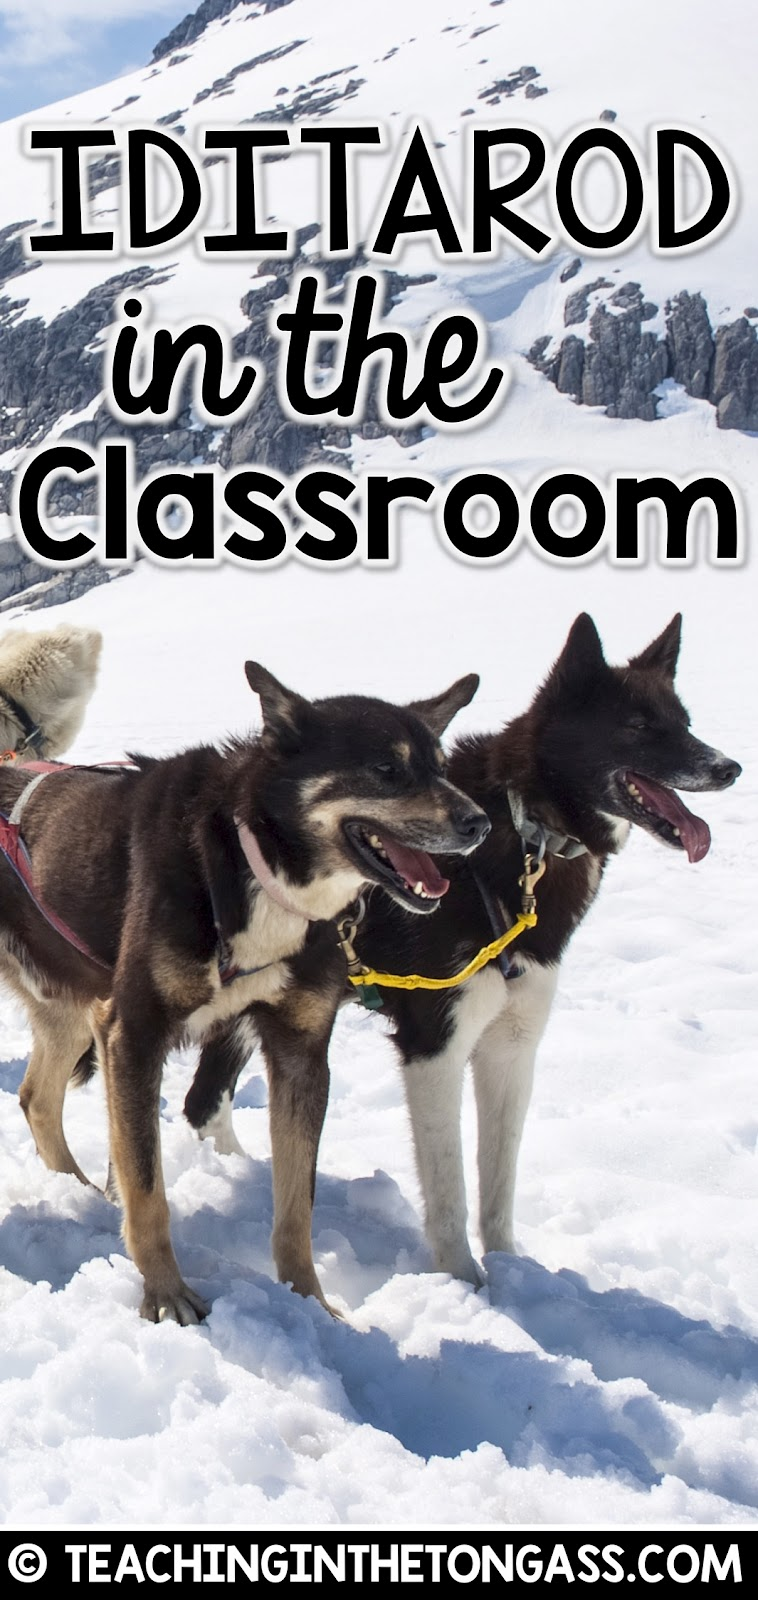 Iditarod Activities for kids